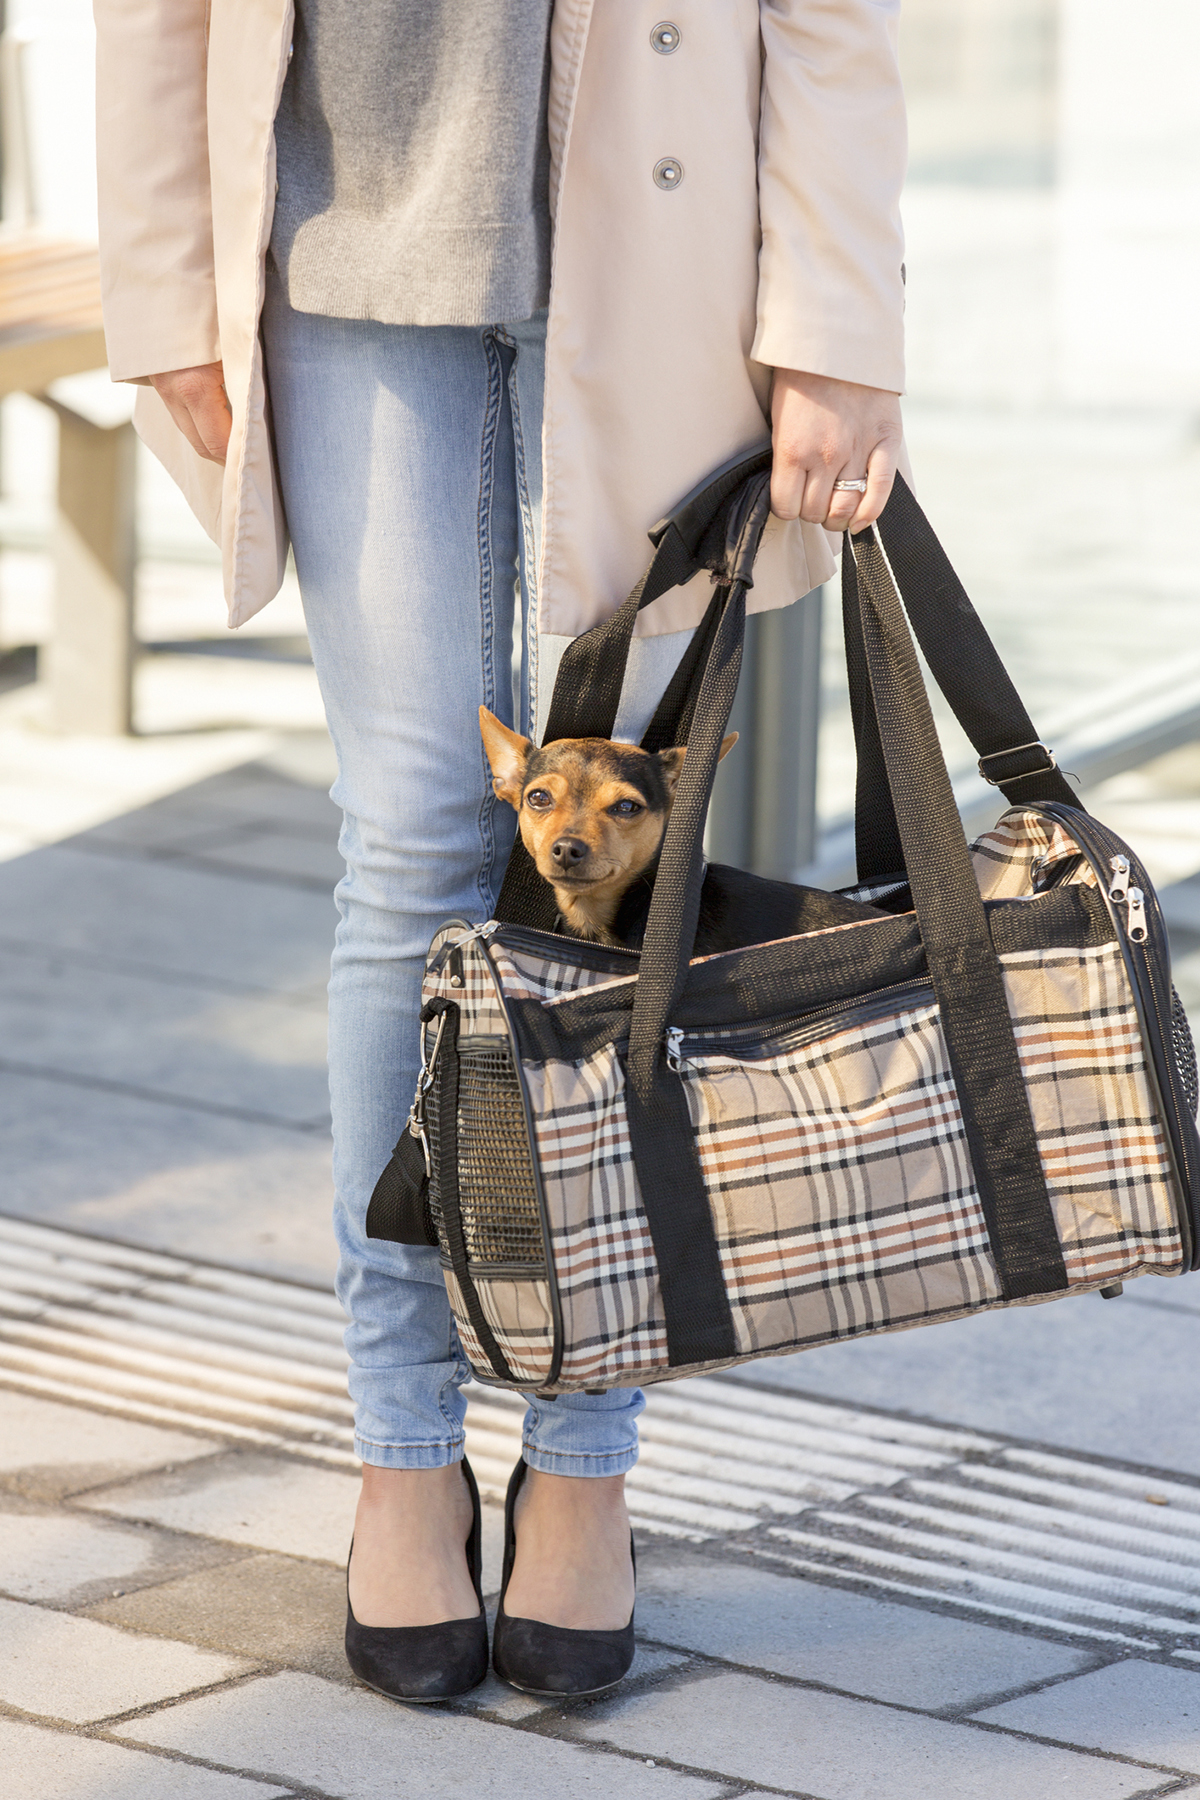 Photo of a woman carrying a dog in a bag